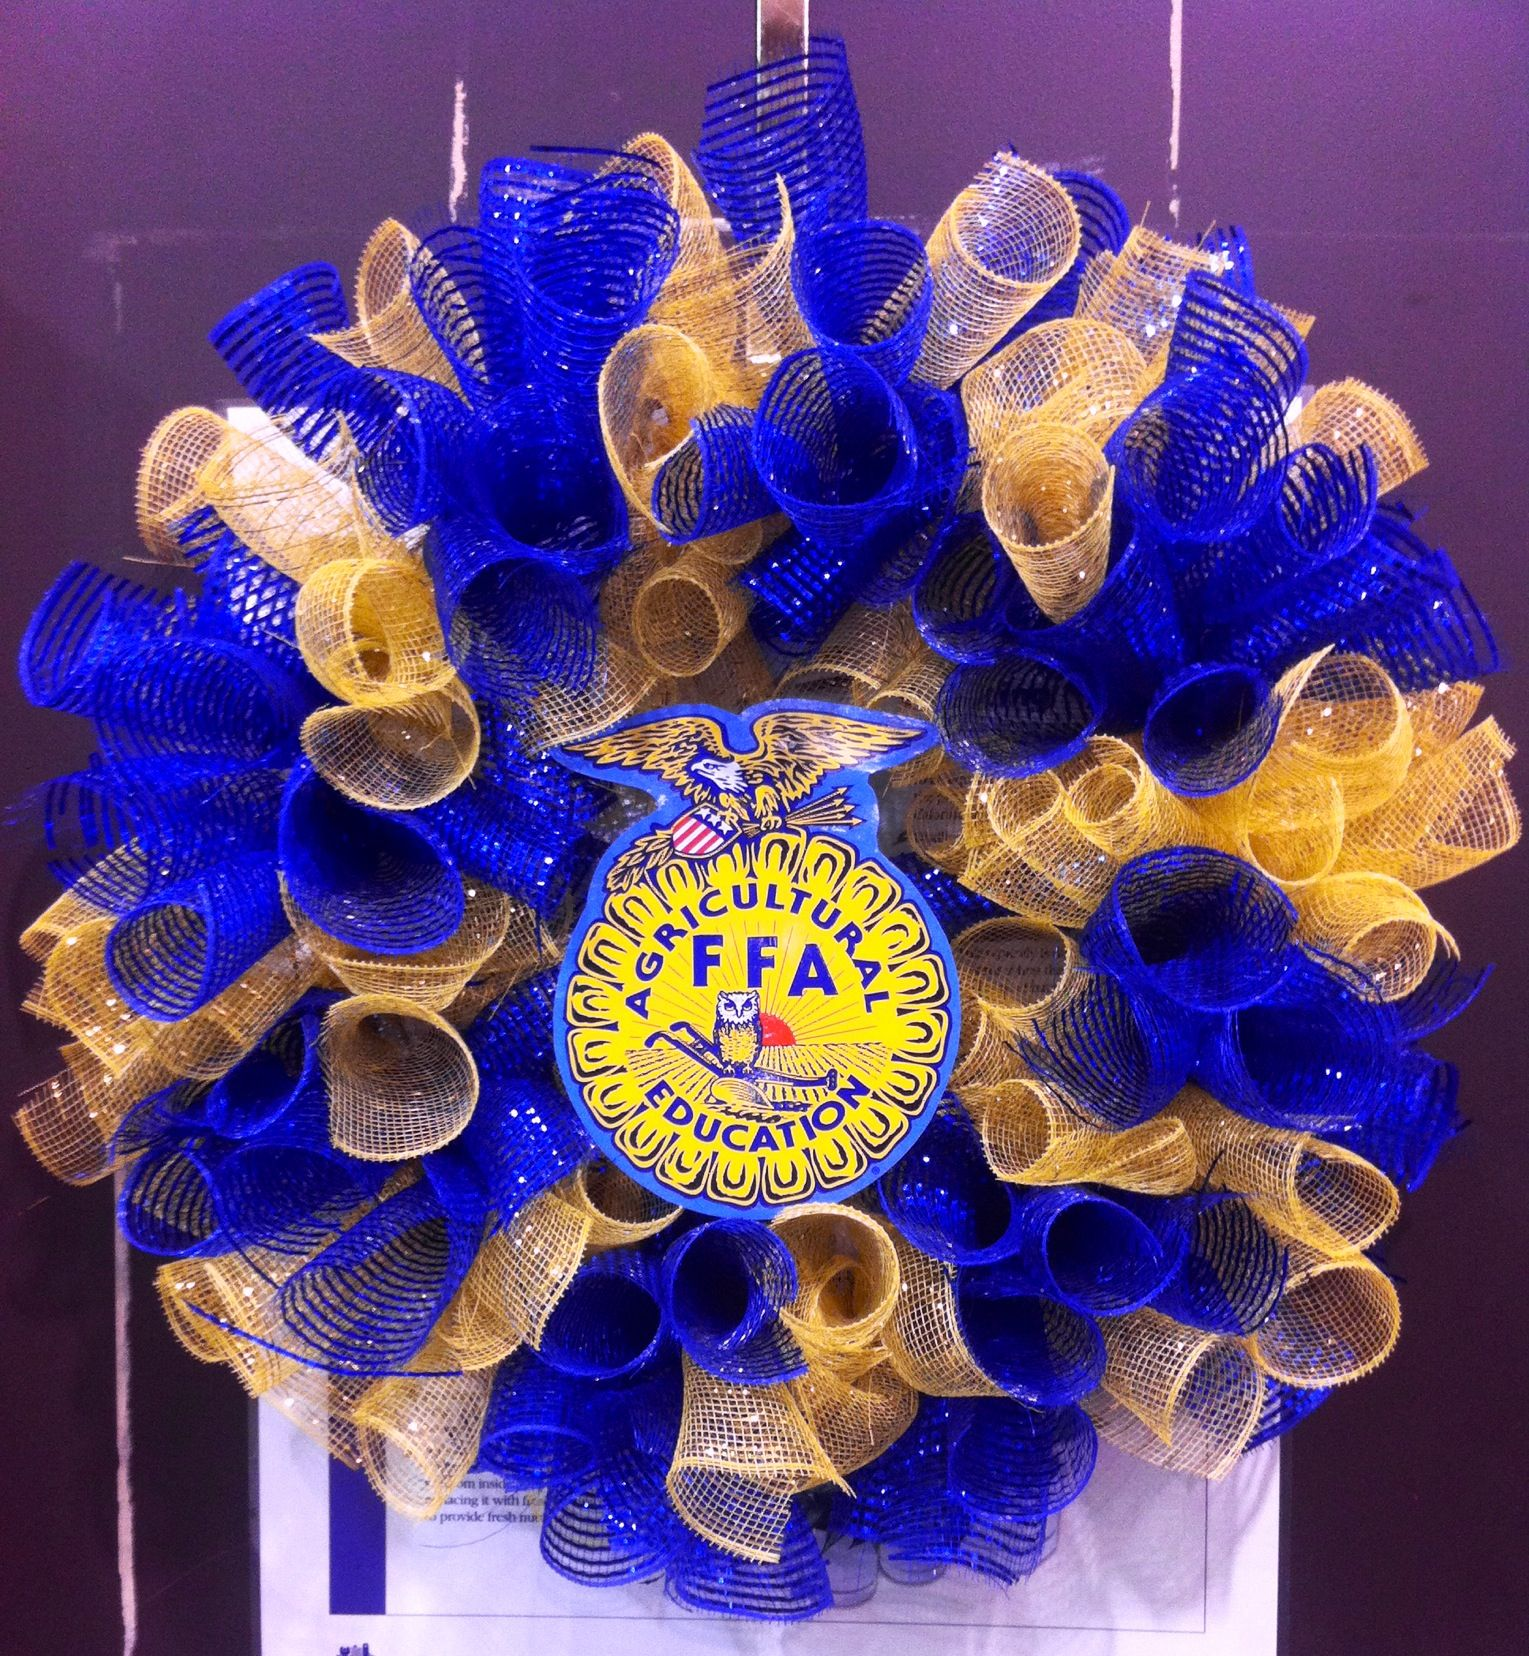 Ffa Wreath Great To Make For Any Ffa Lover As A Gift Or To Sell As A Fundraiser Ffa Fundraiser Crafts Ffa